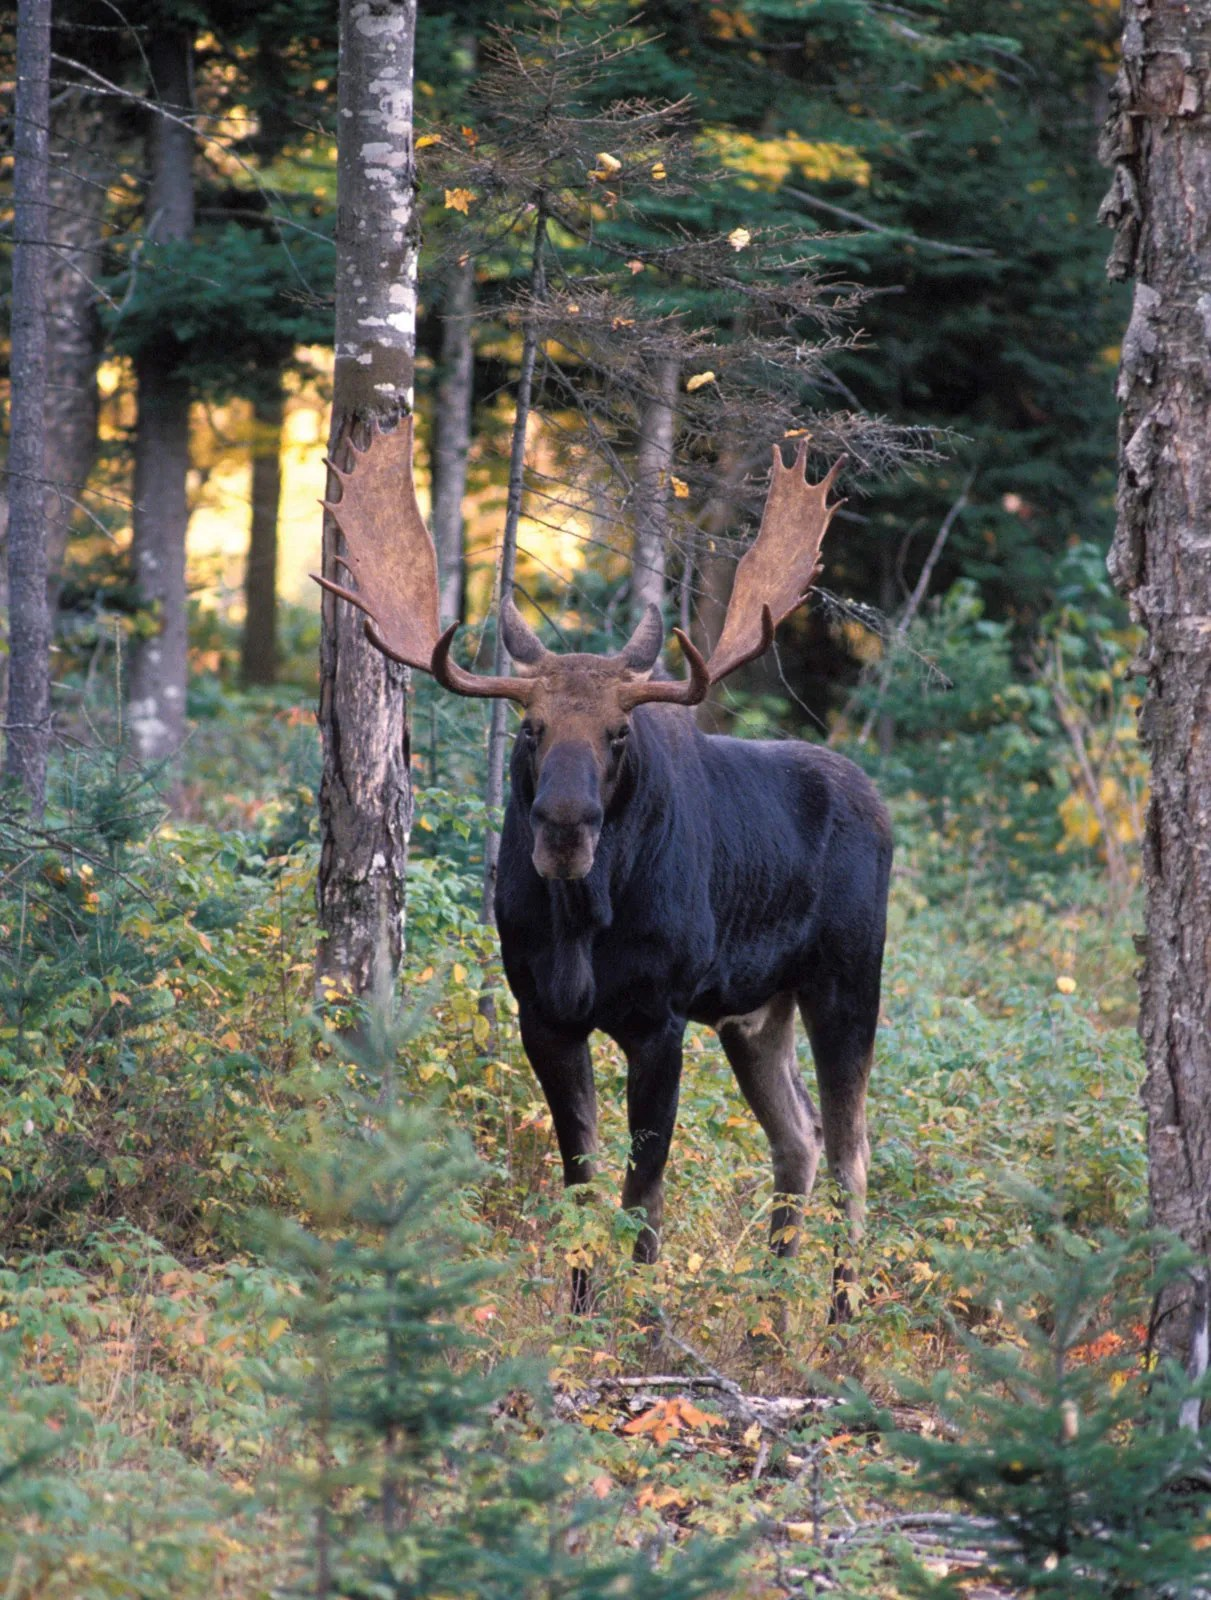 Biggest Moose Ever Recorded : biggest, moose, recorded, Moose, Habitat,, Size,, Weight,, Diet,, Antlers,, Facts, Britannica